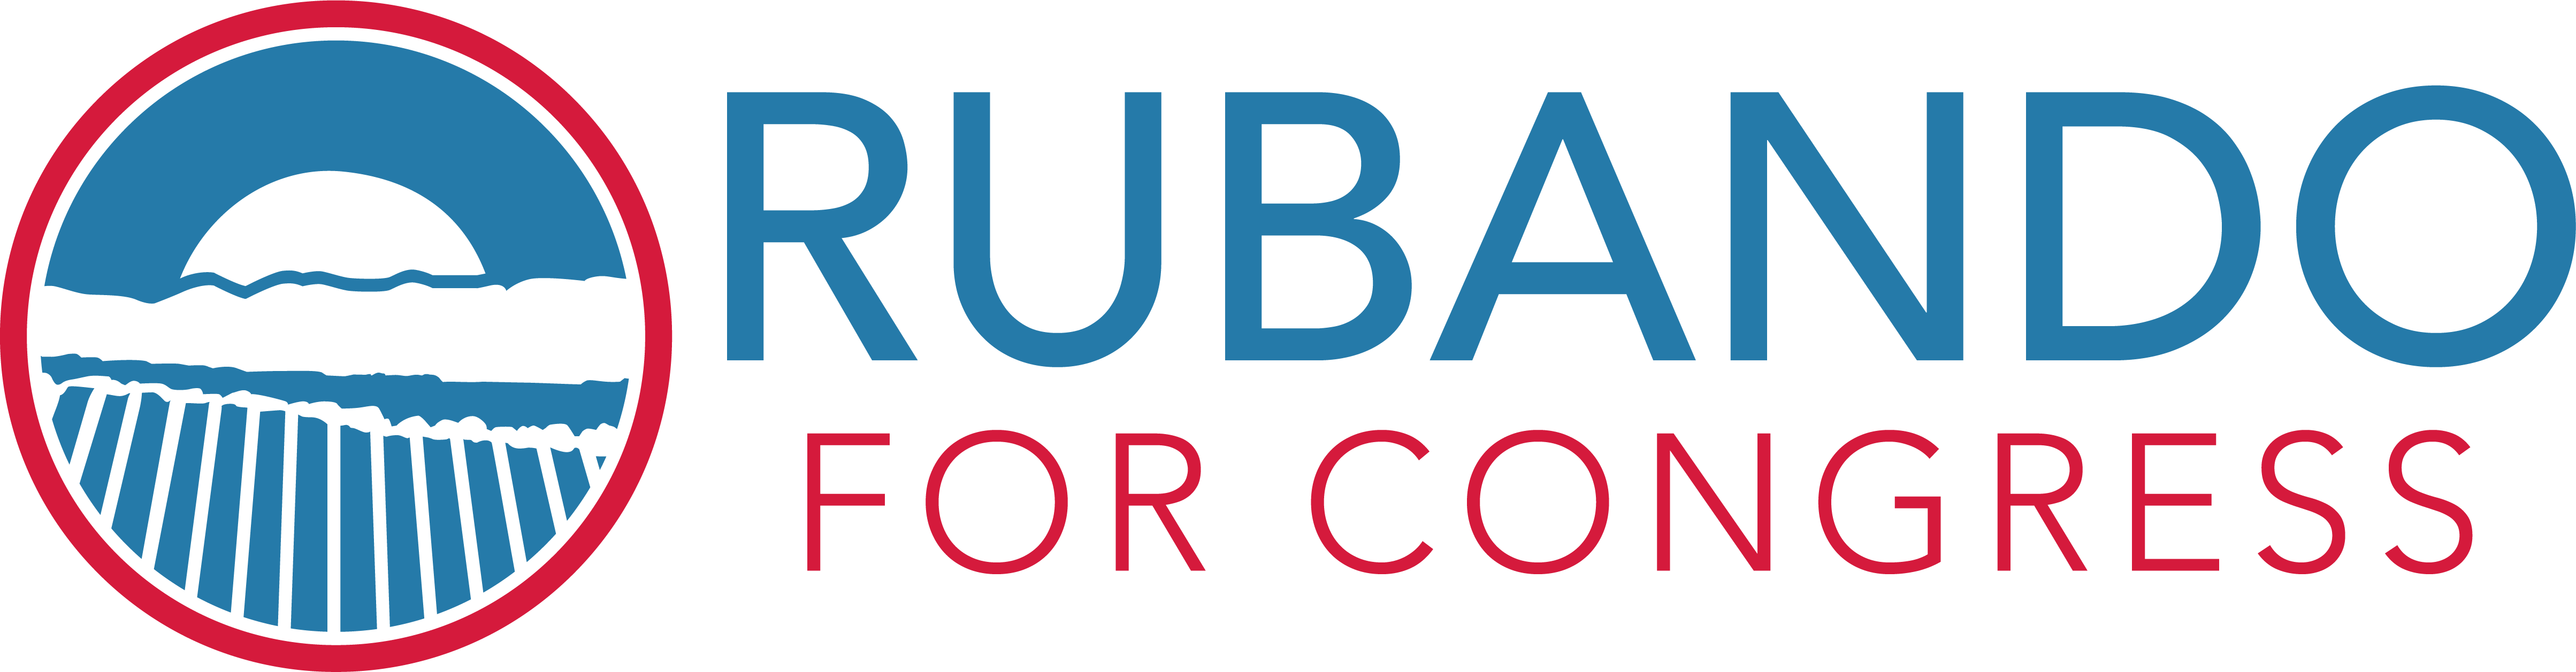 Nick Rubando for Congress